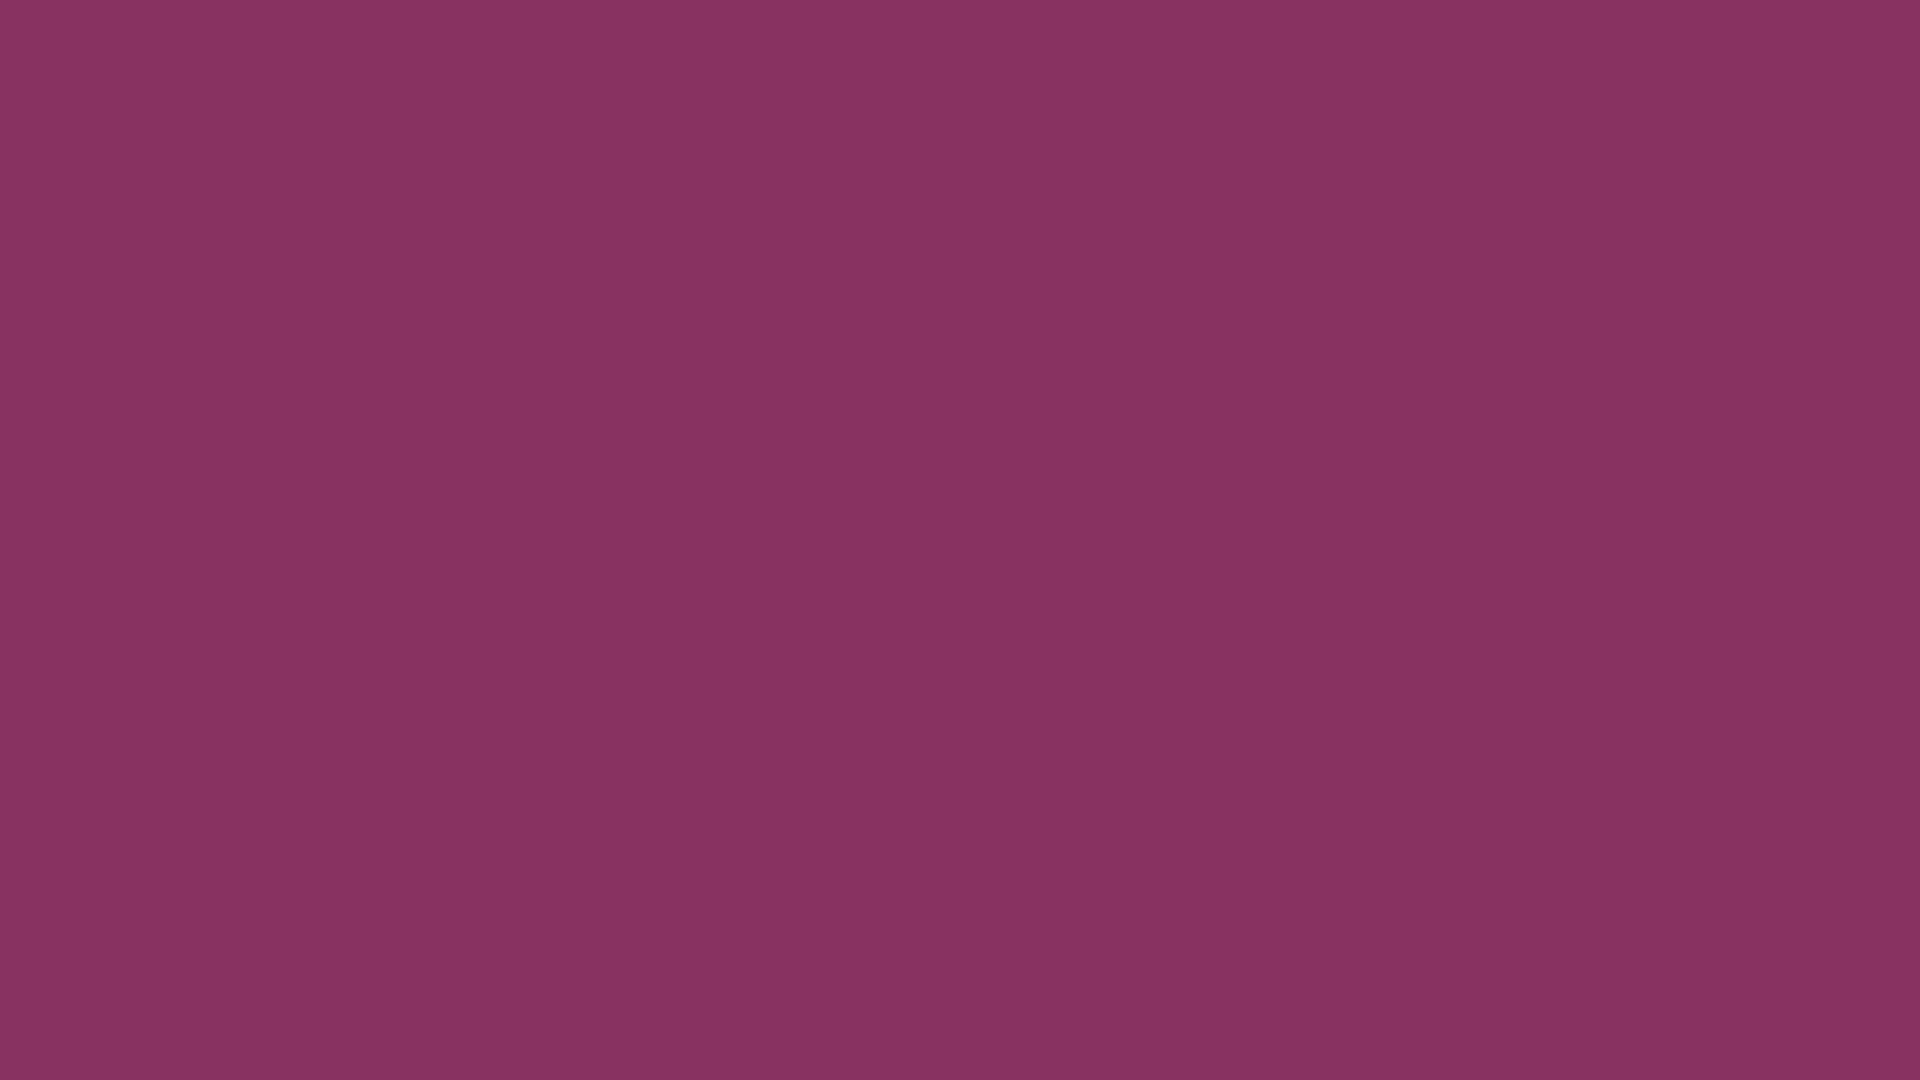 1920x1080 Boysenberry Solid Color Background